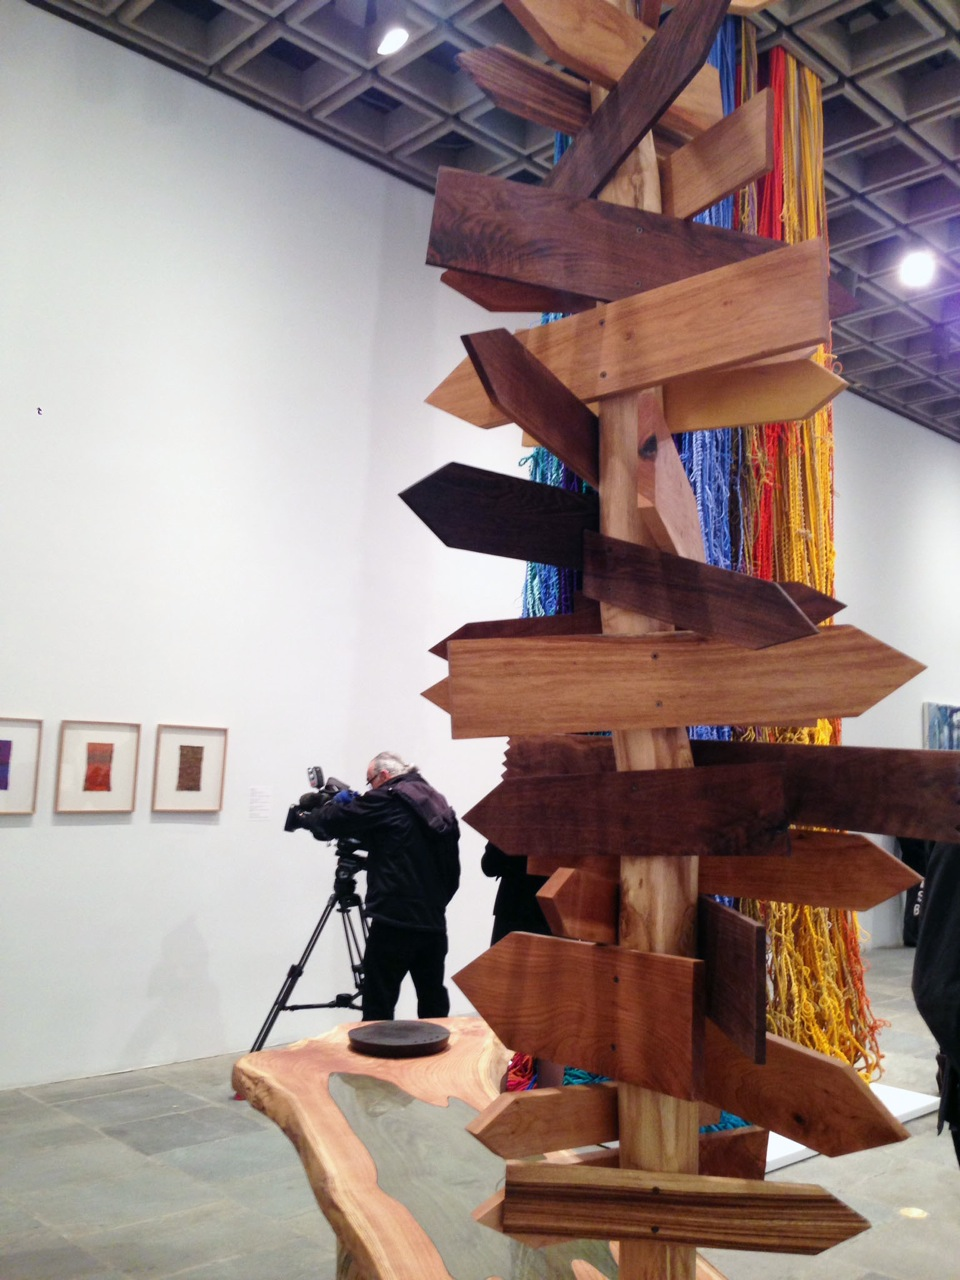 David Robbins (foreground) and Sheila Hicks (background) (curated by Michelle Grabner)